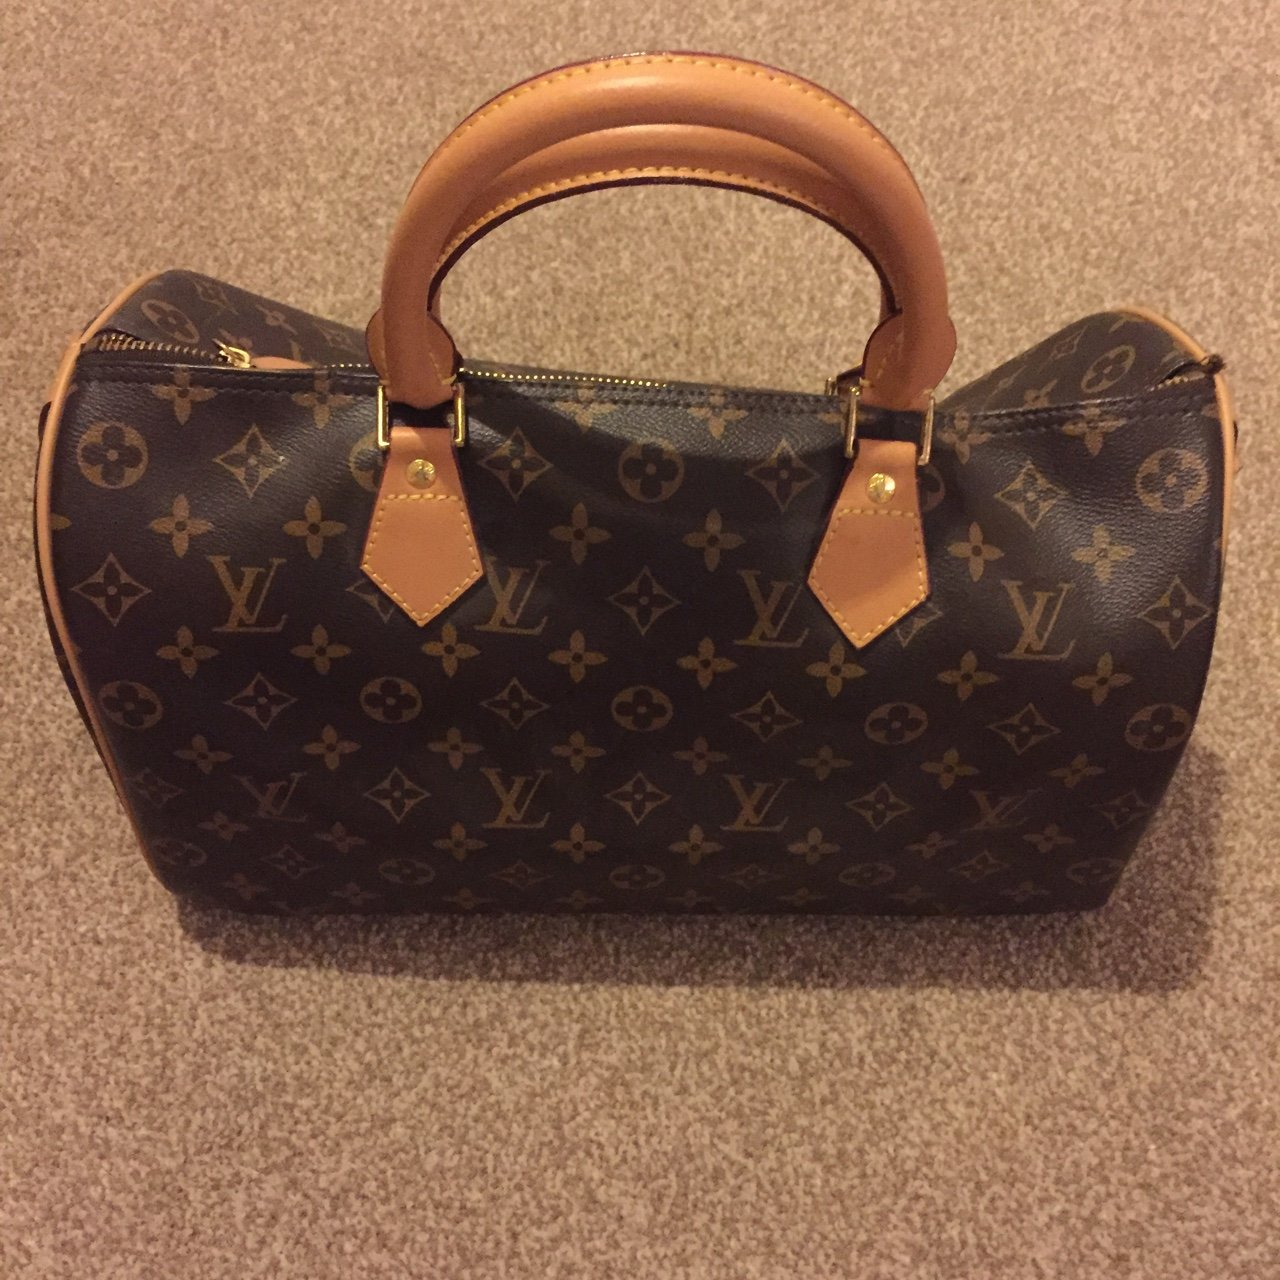 2e4a4f8f4a17 Louis Vuitton LV handbag. Never taken out and in perfect for - Depop